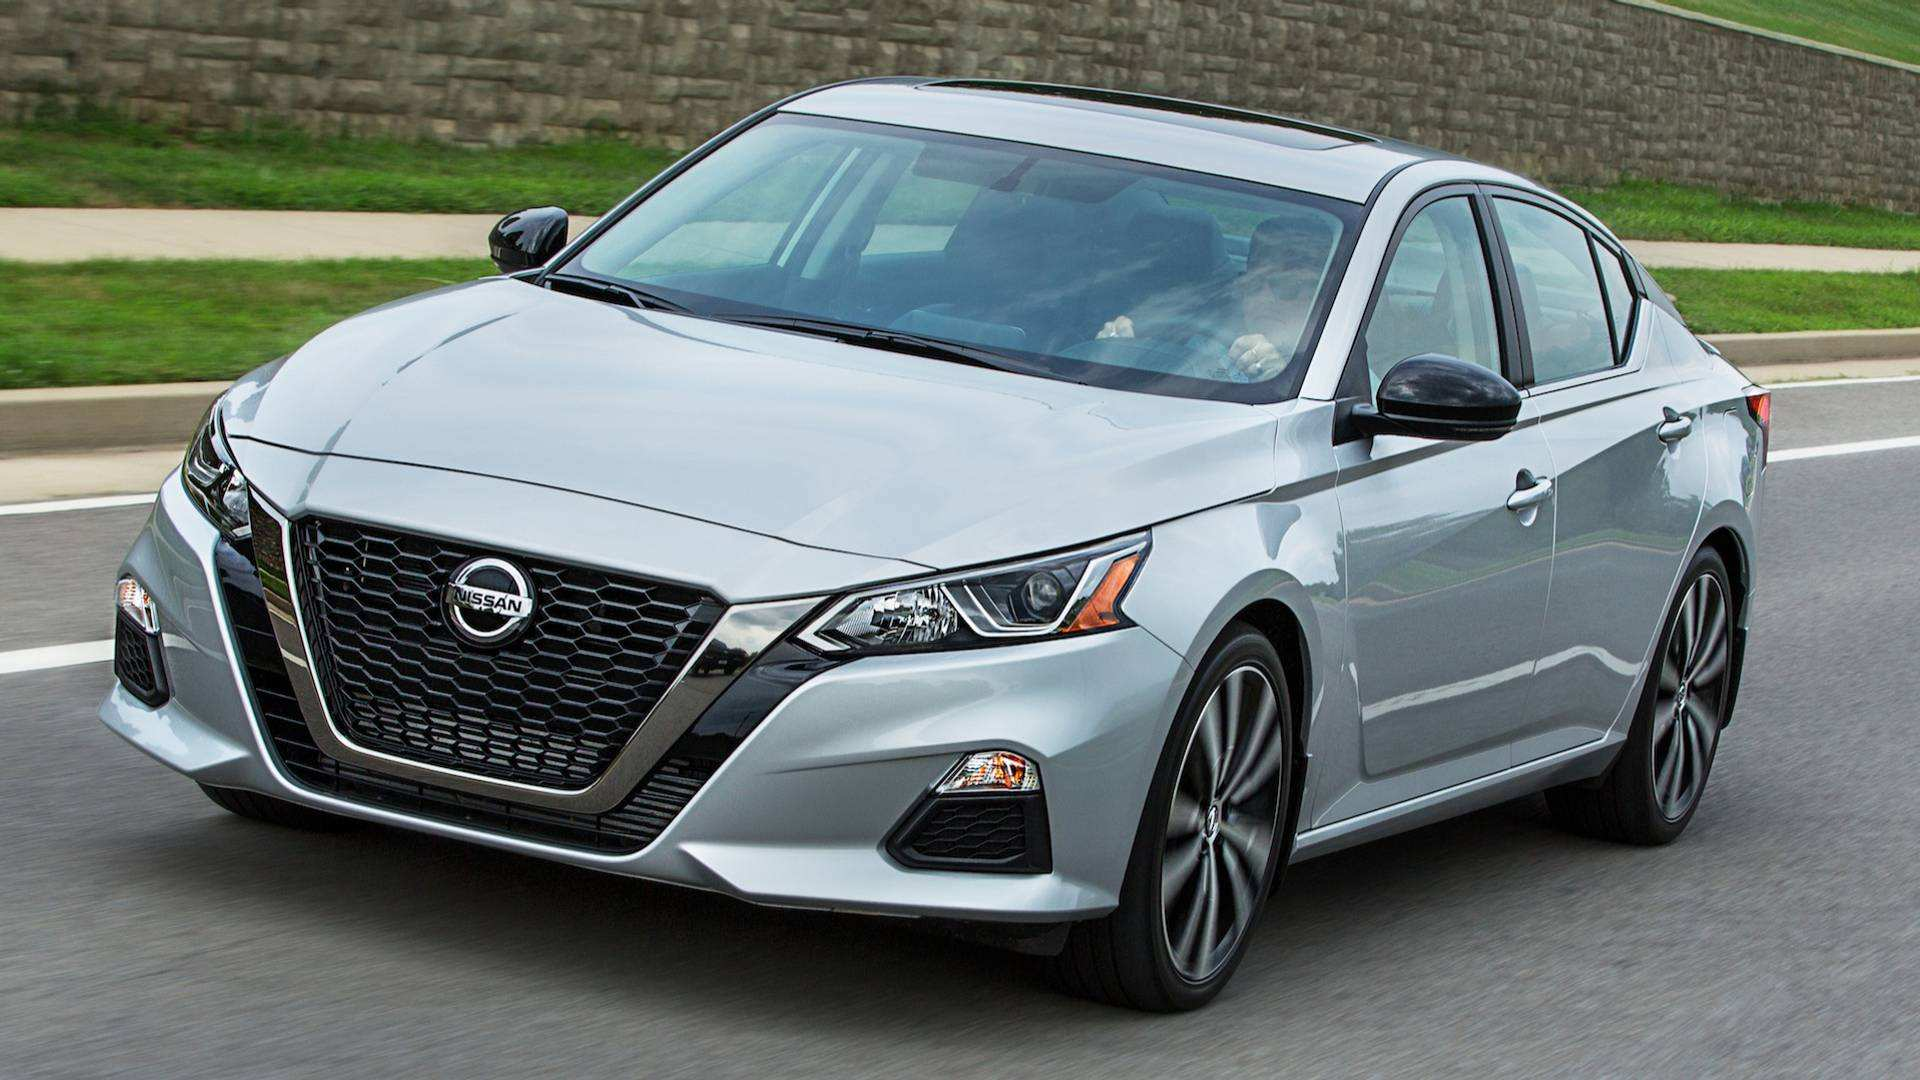 78 The Best 2019 Nissan Altima Engine First Drive